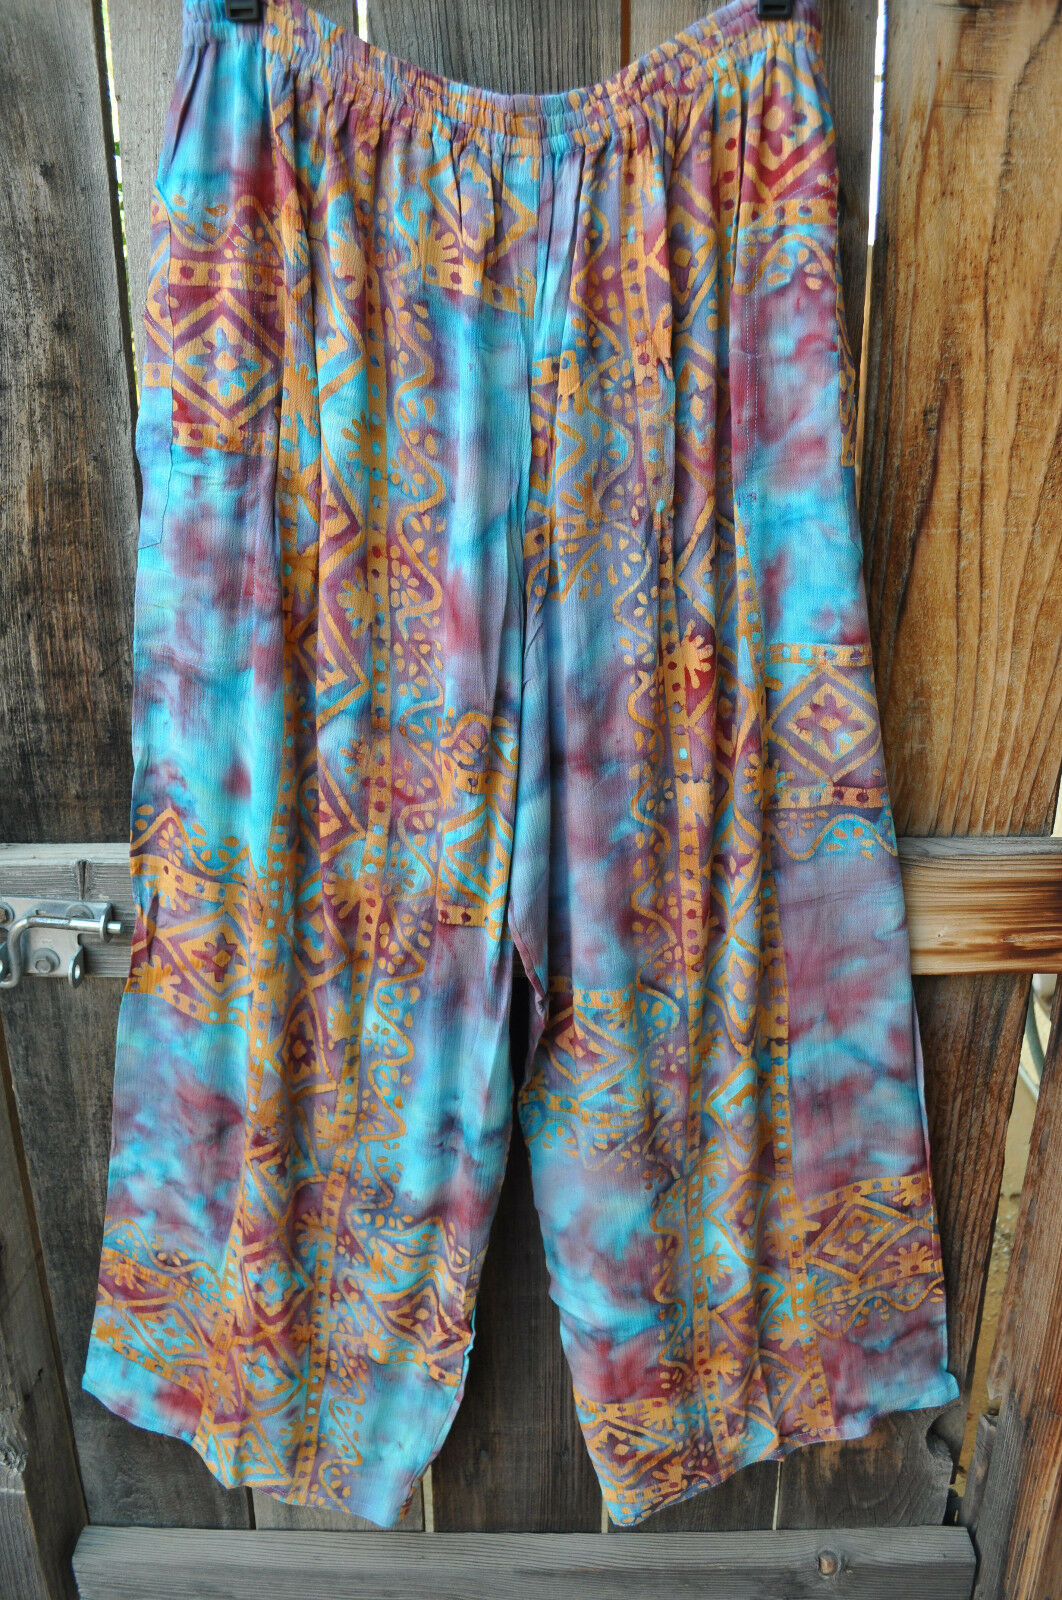 ART TO WEAR ANACAPA PANTS IN BEAUTIFUL NEW CALYPSO BATIK BY MISSION CANYON,OS+